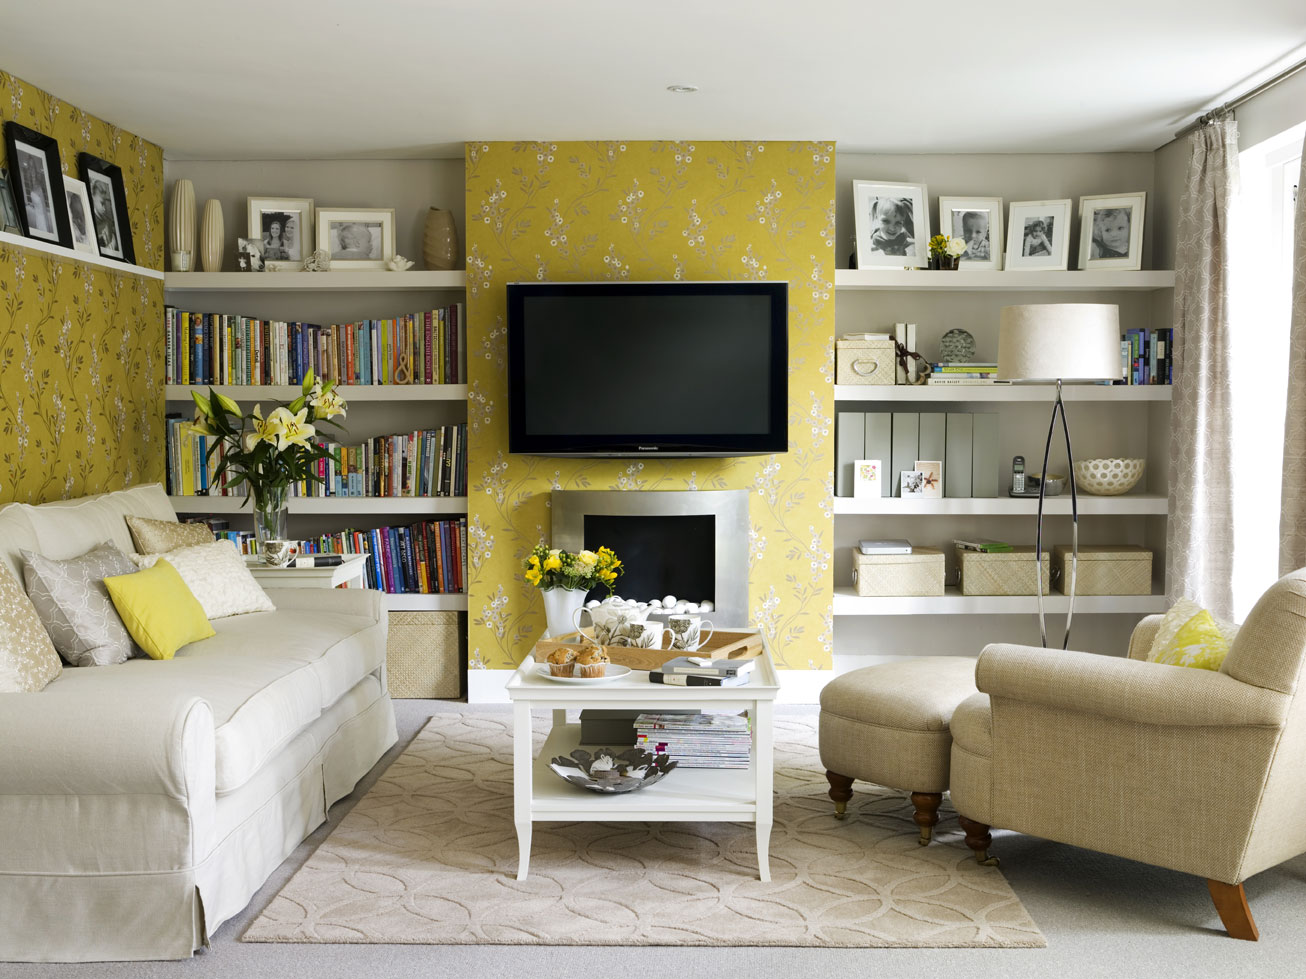 Yellow room interior inspiration 55 rooms for your for Living rooms ideas and inspiration